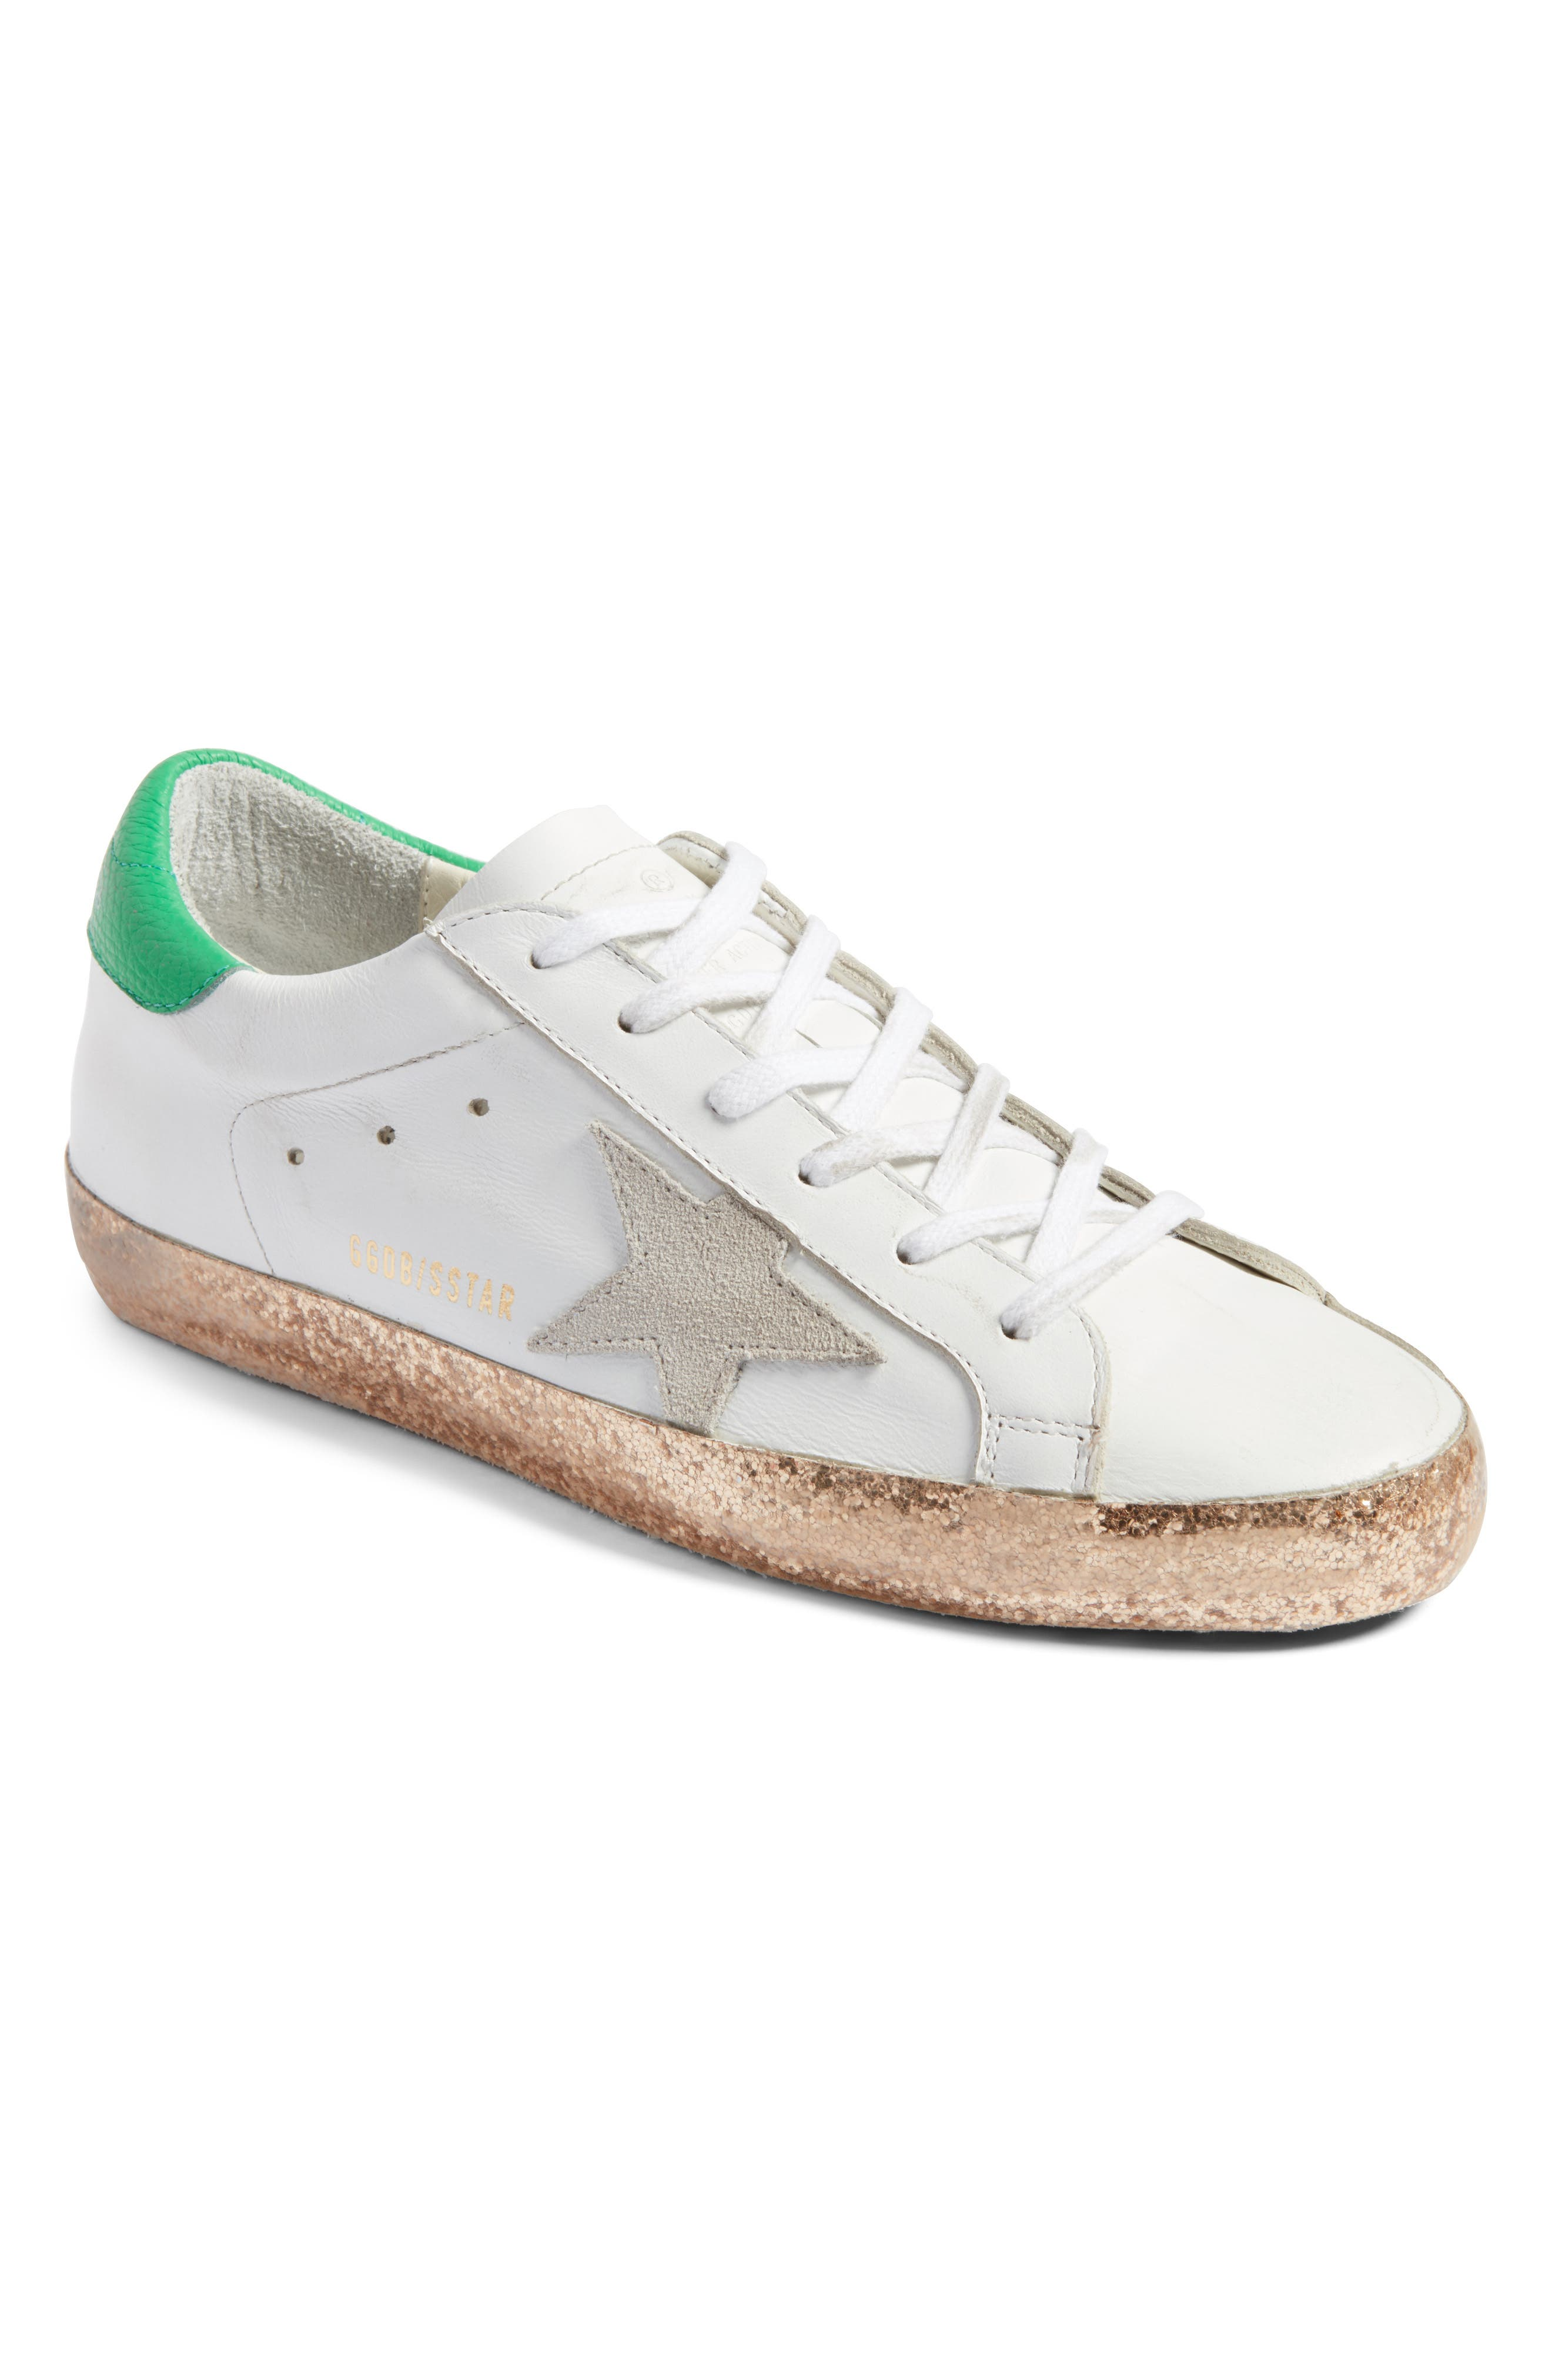 Superstar Low Top Sneaker,                         Main,                         color, White Leather/ Gold